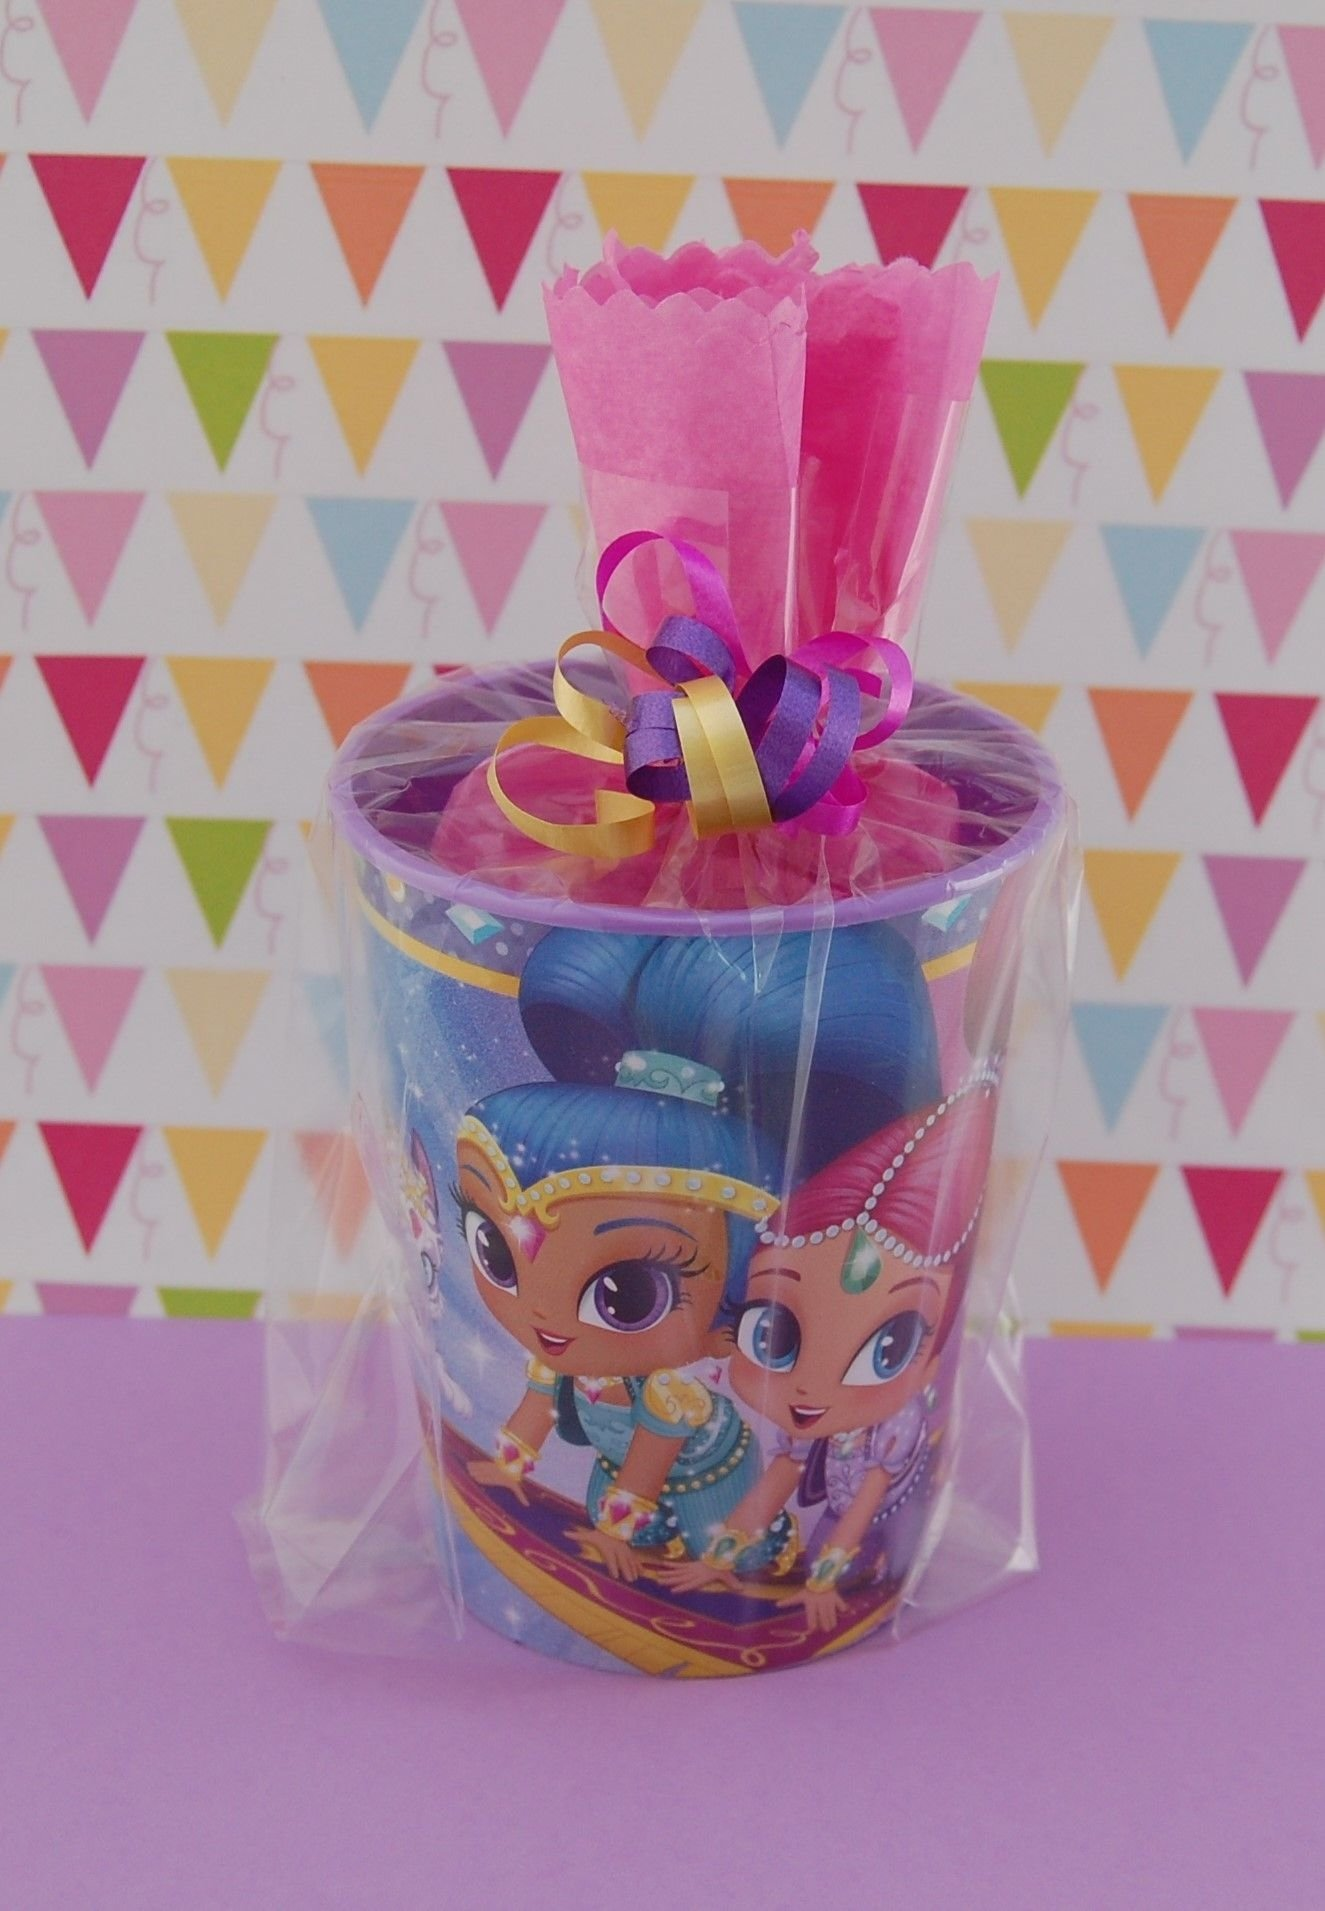 4 Source Birthday Party Goodie Bag Ideas For 10 Year Olds Idea Gallery